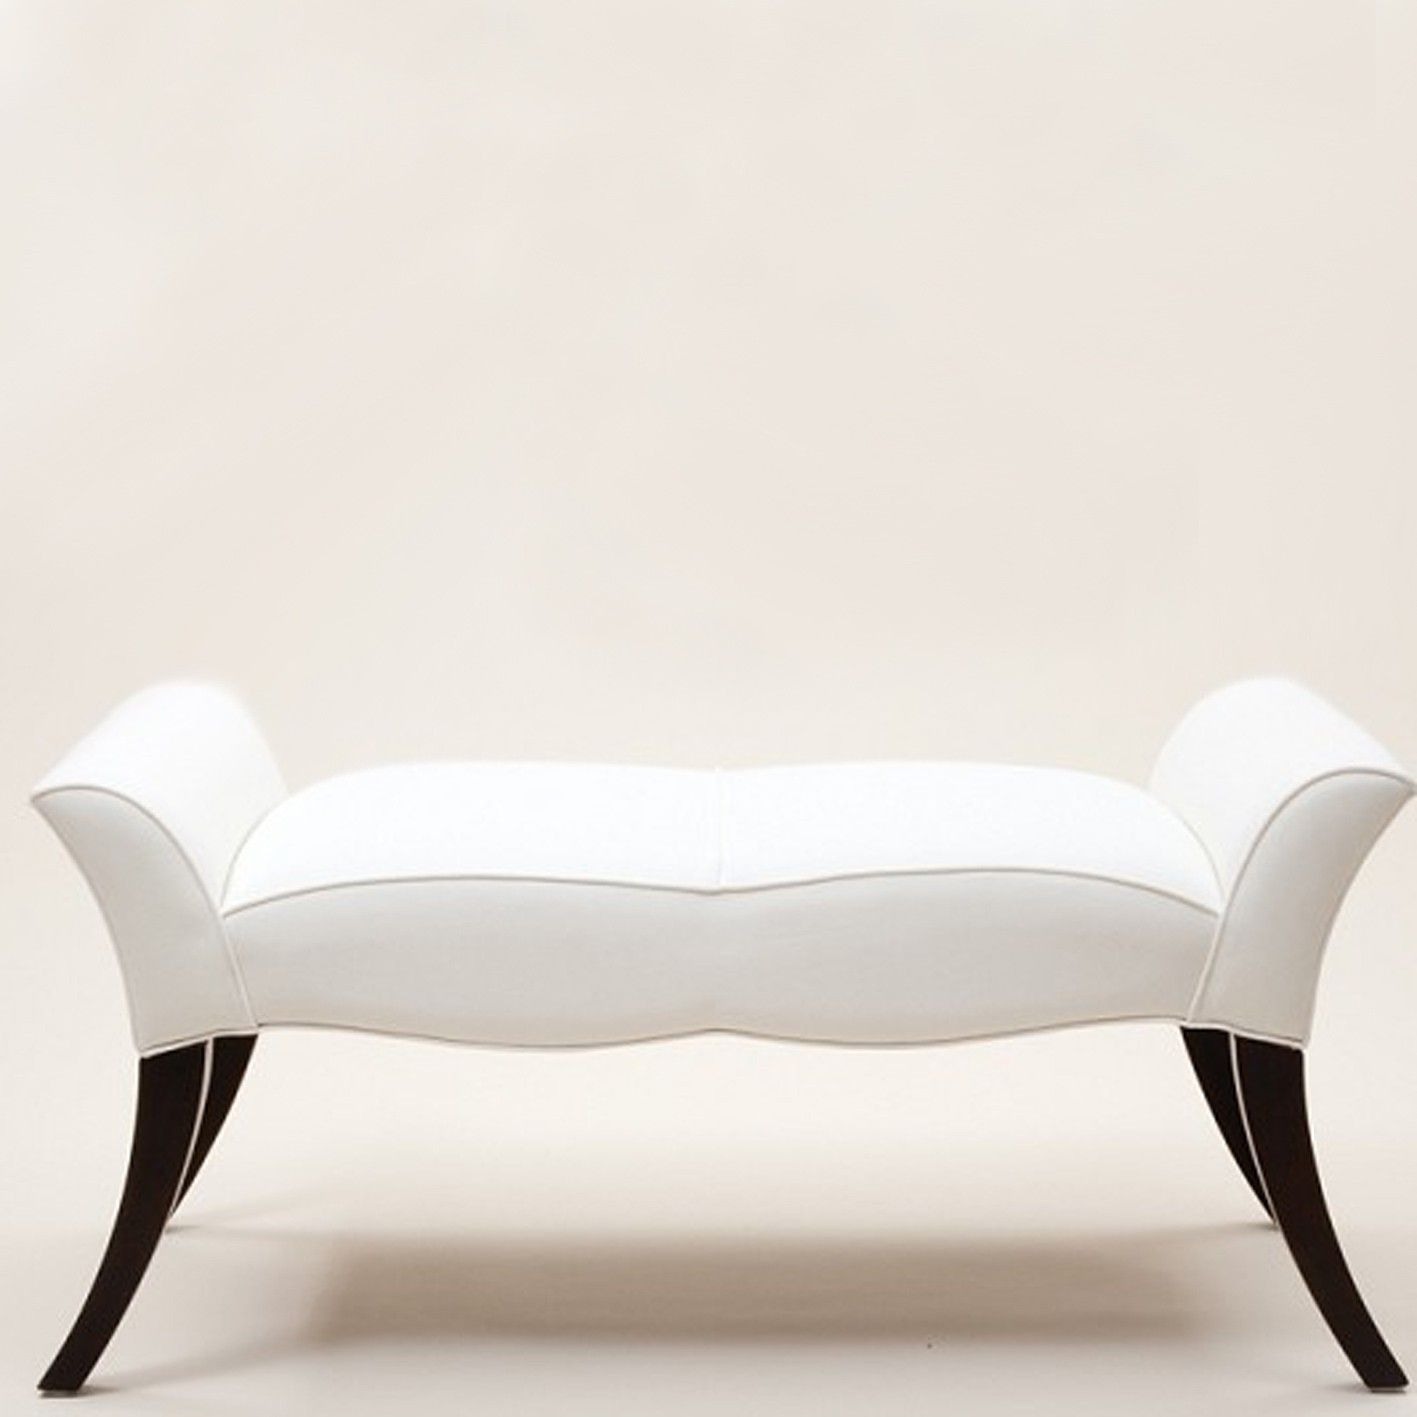 seating ottomans curvaceous